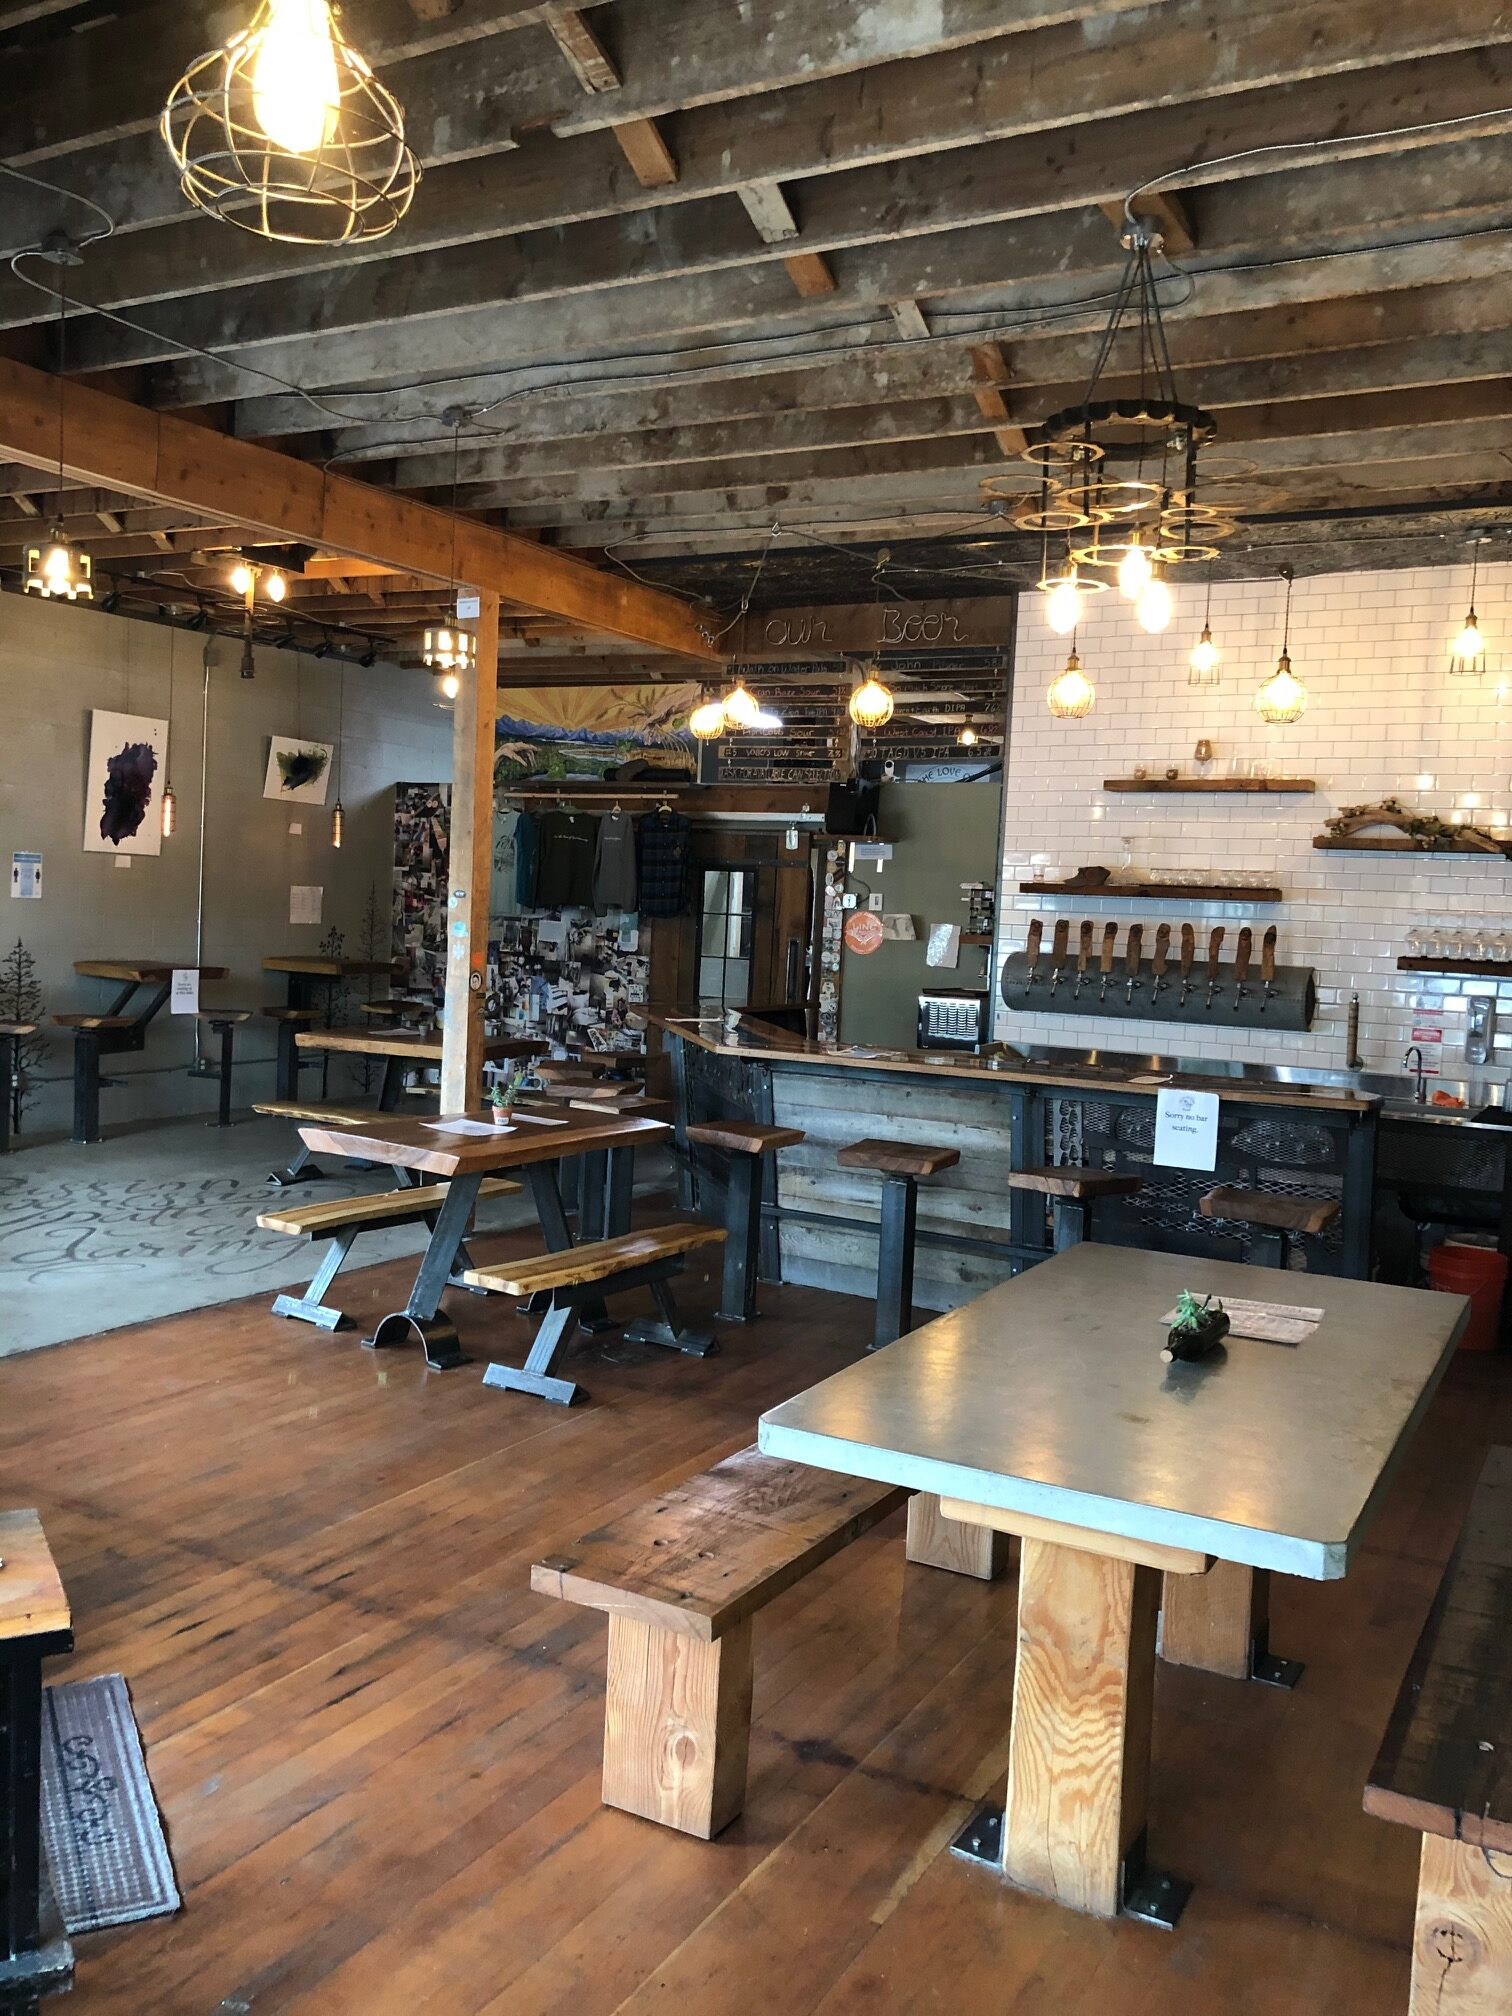 A brewery storefront with exposed ceiling beams.